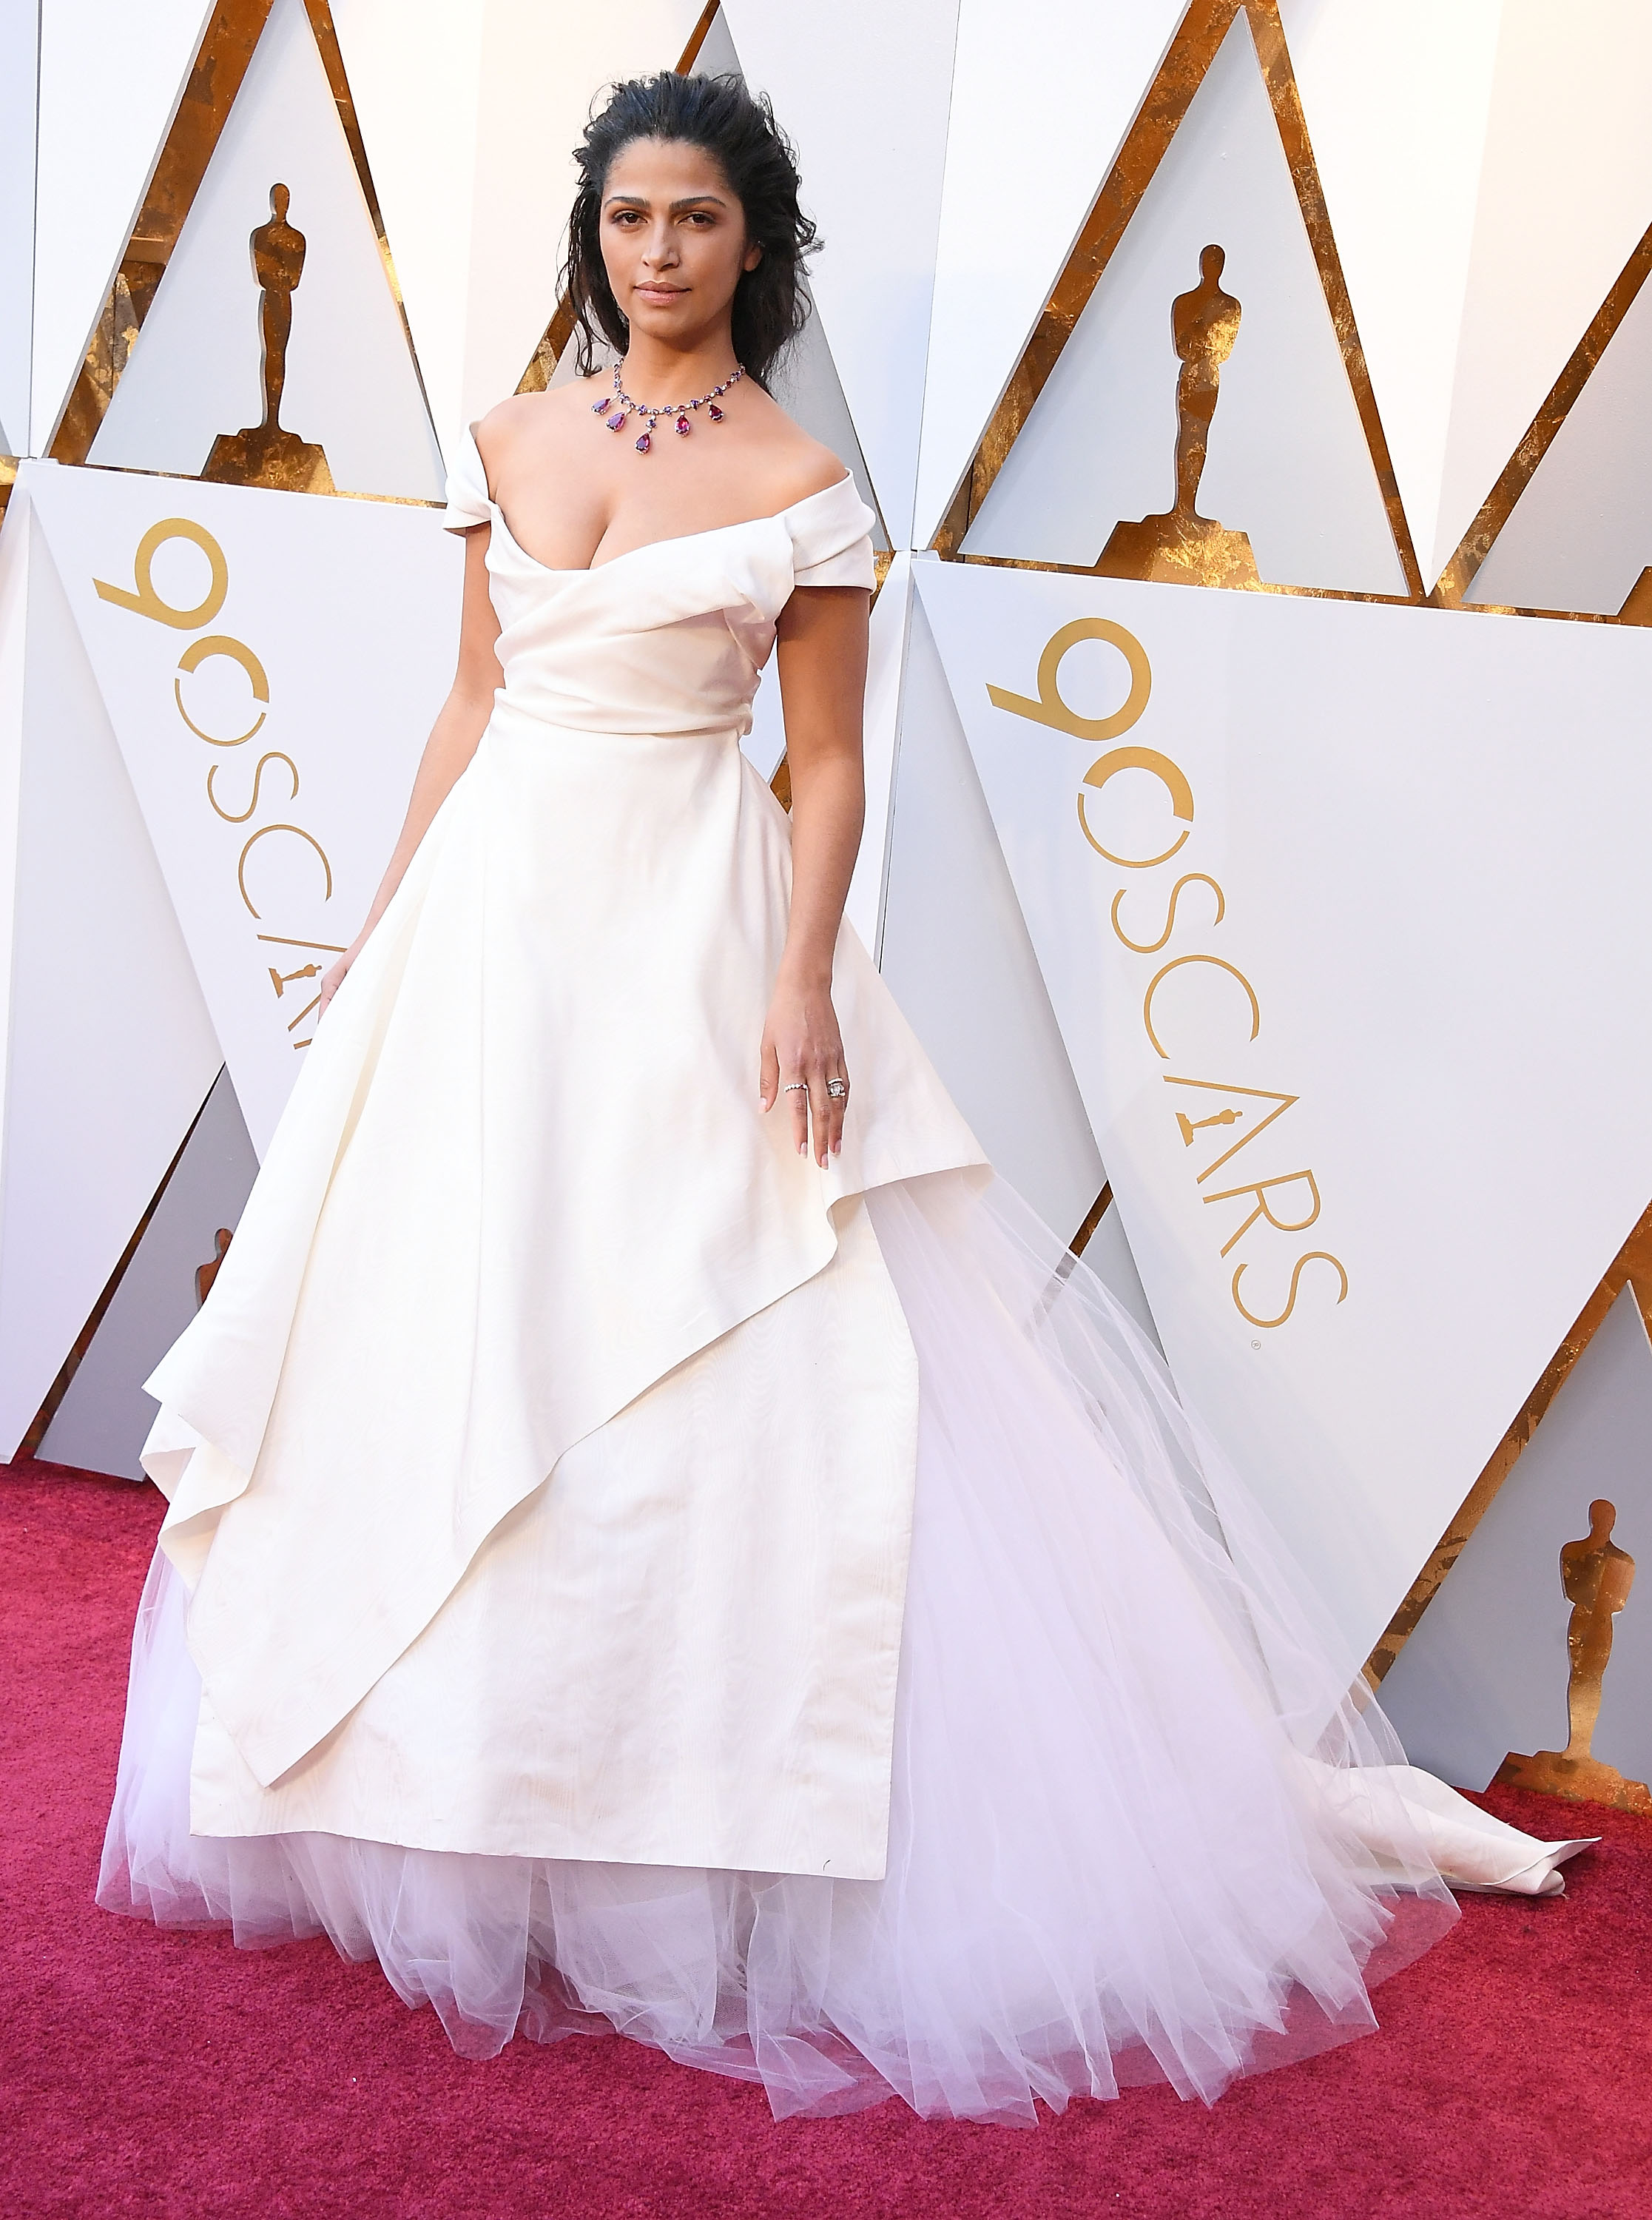 05571913bb70 HOLLYWOOD, CA – MARCH 04: Camila Alves arrives at the 90th Annual Academy  Awards at Hollywood & Highland Center on March 4, 2018 in Hollywood,  California.